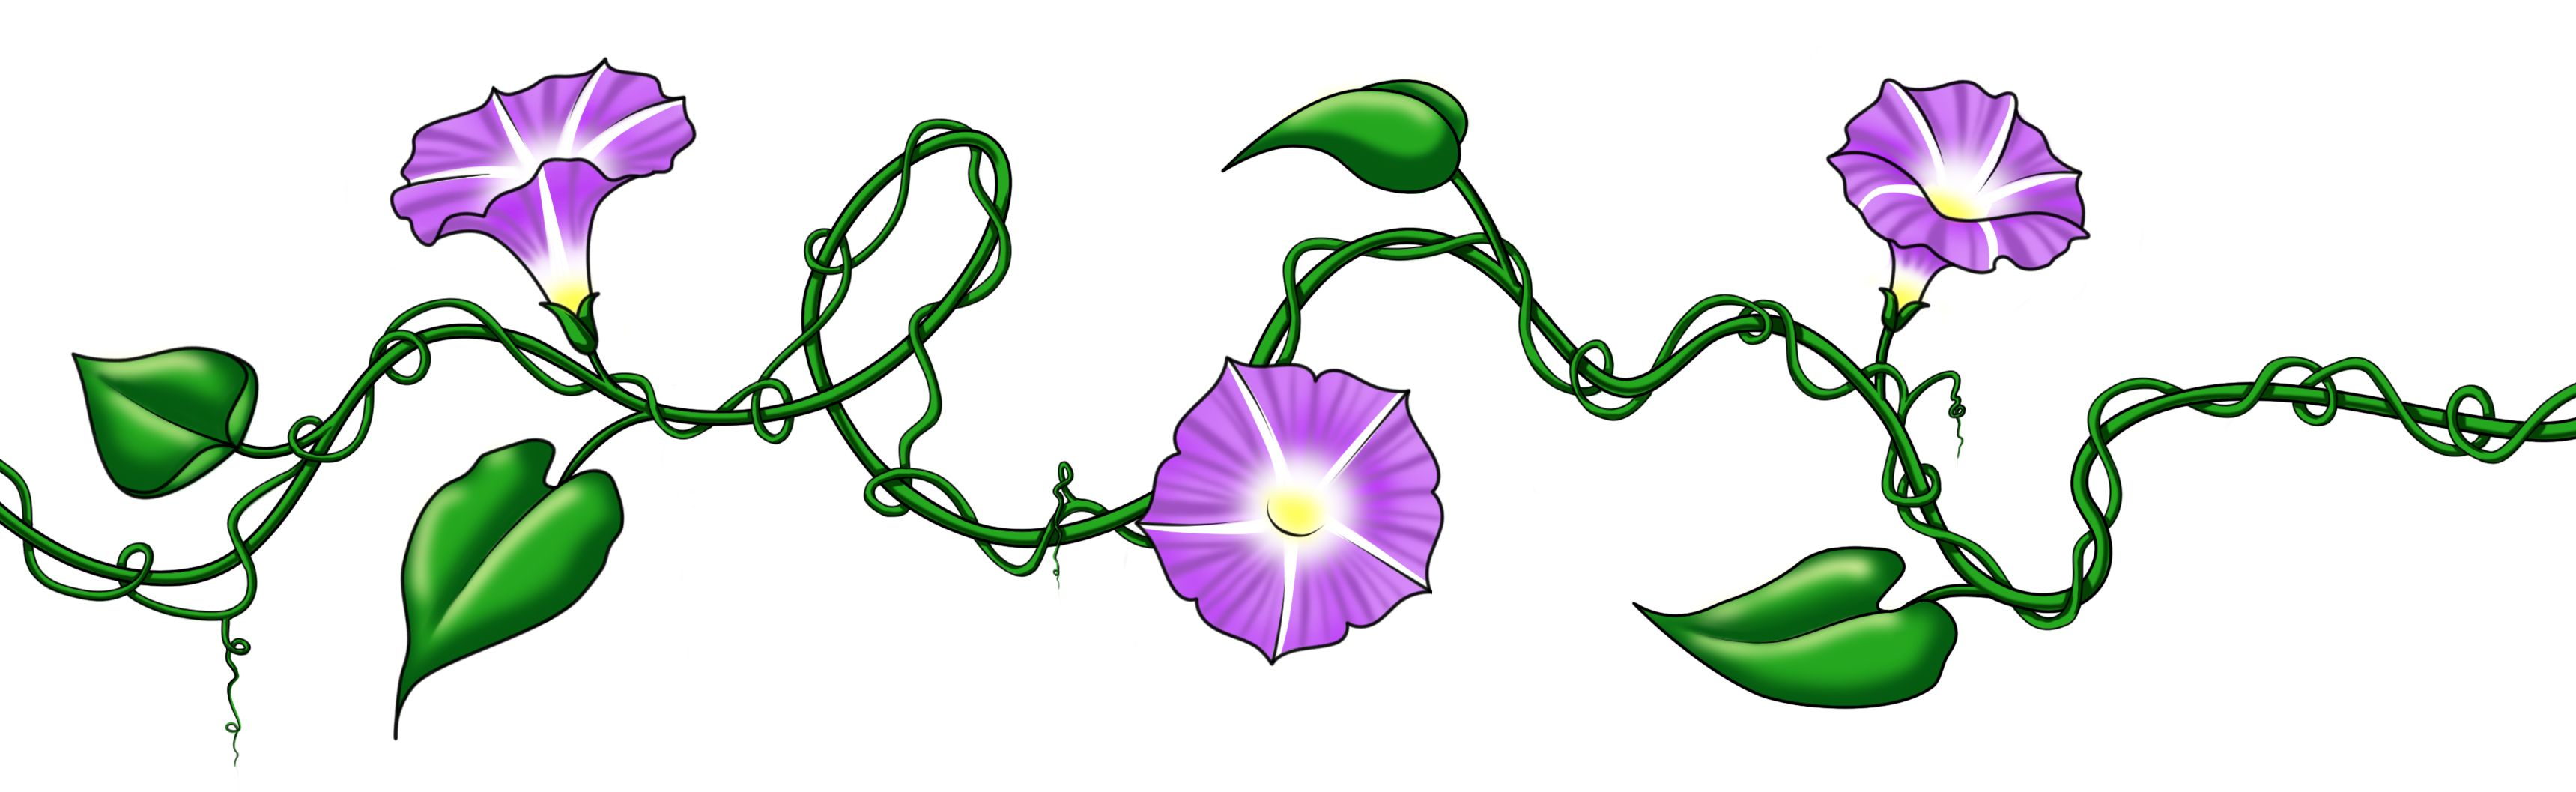 Morning Drawing Flower Glory Vines